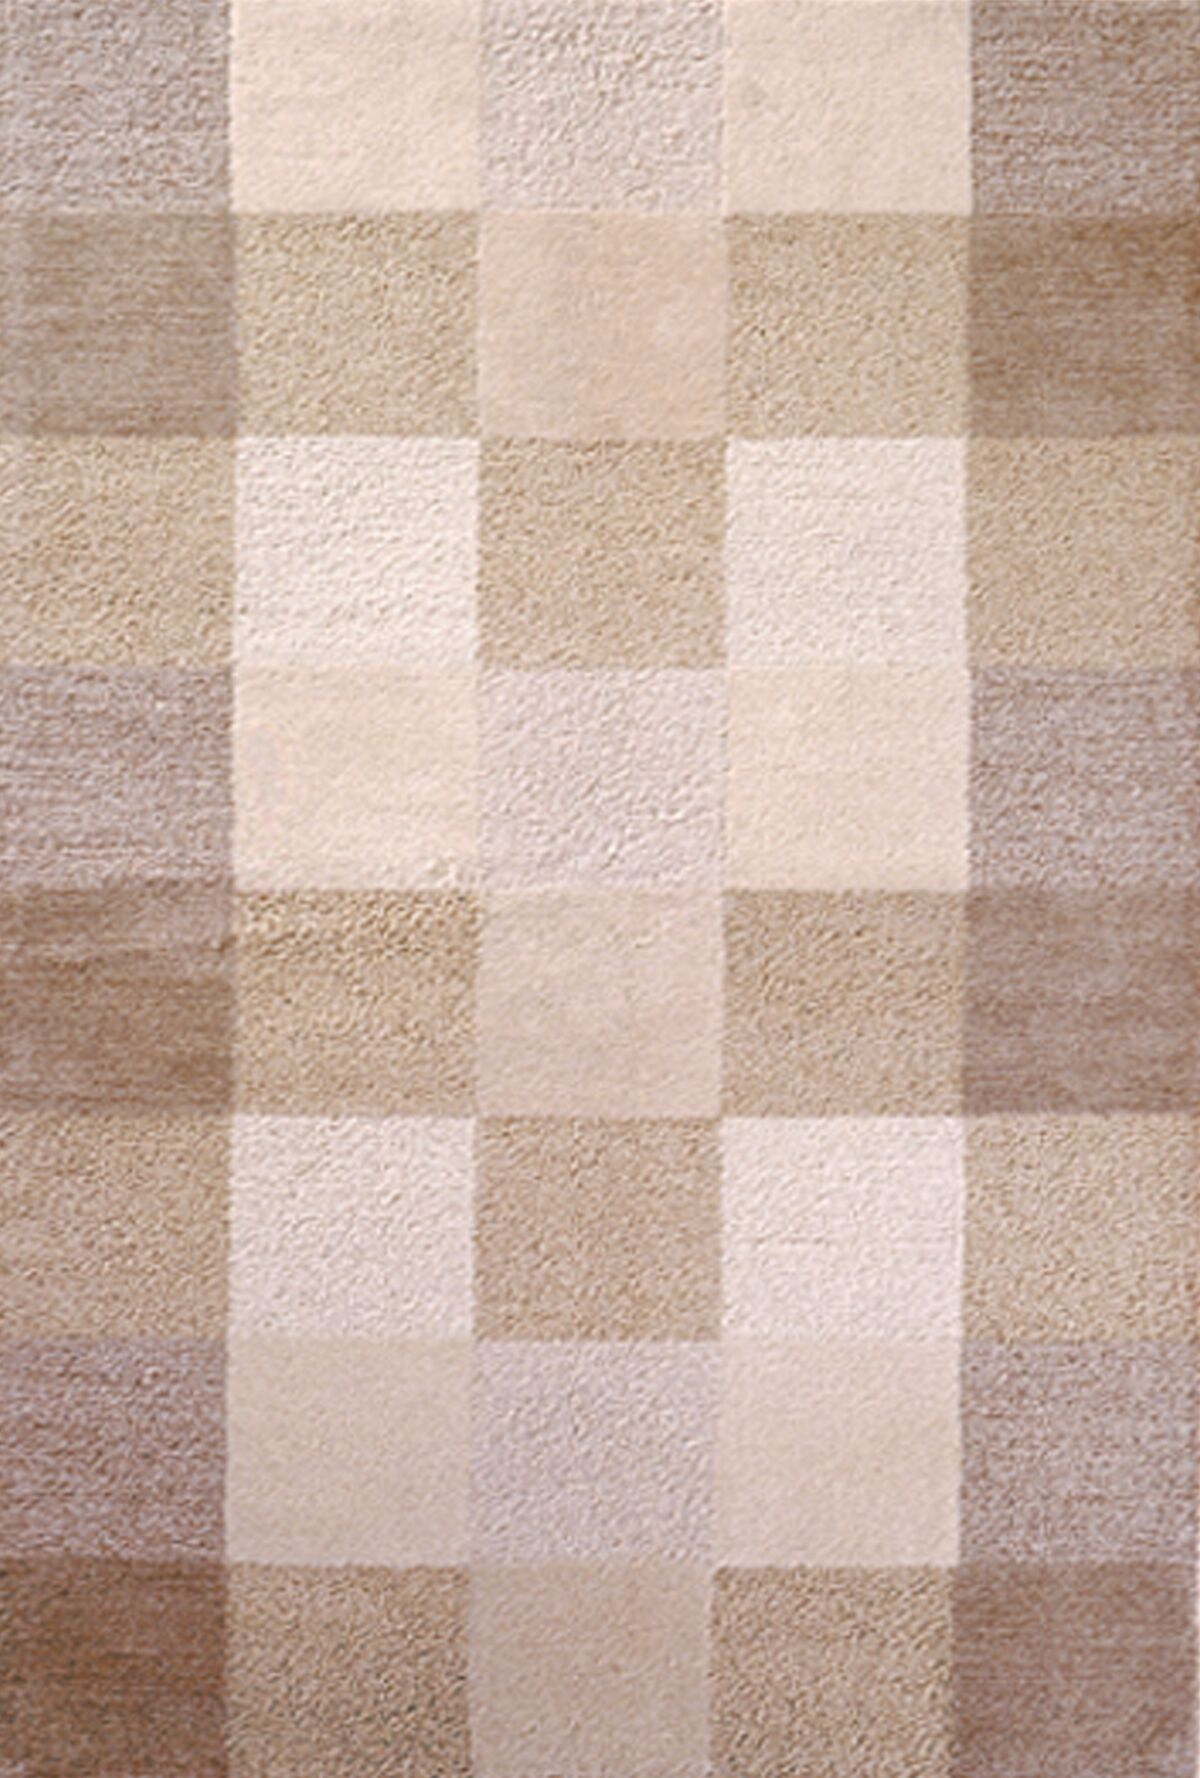 Bevill Ivory Checkerboard Area Rug Rug Size: 8' x 10'6